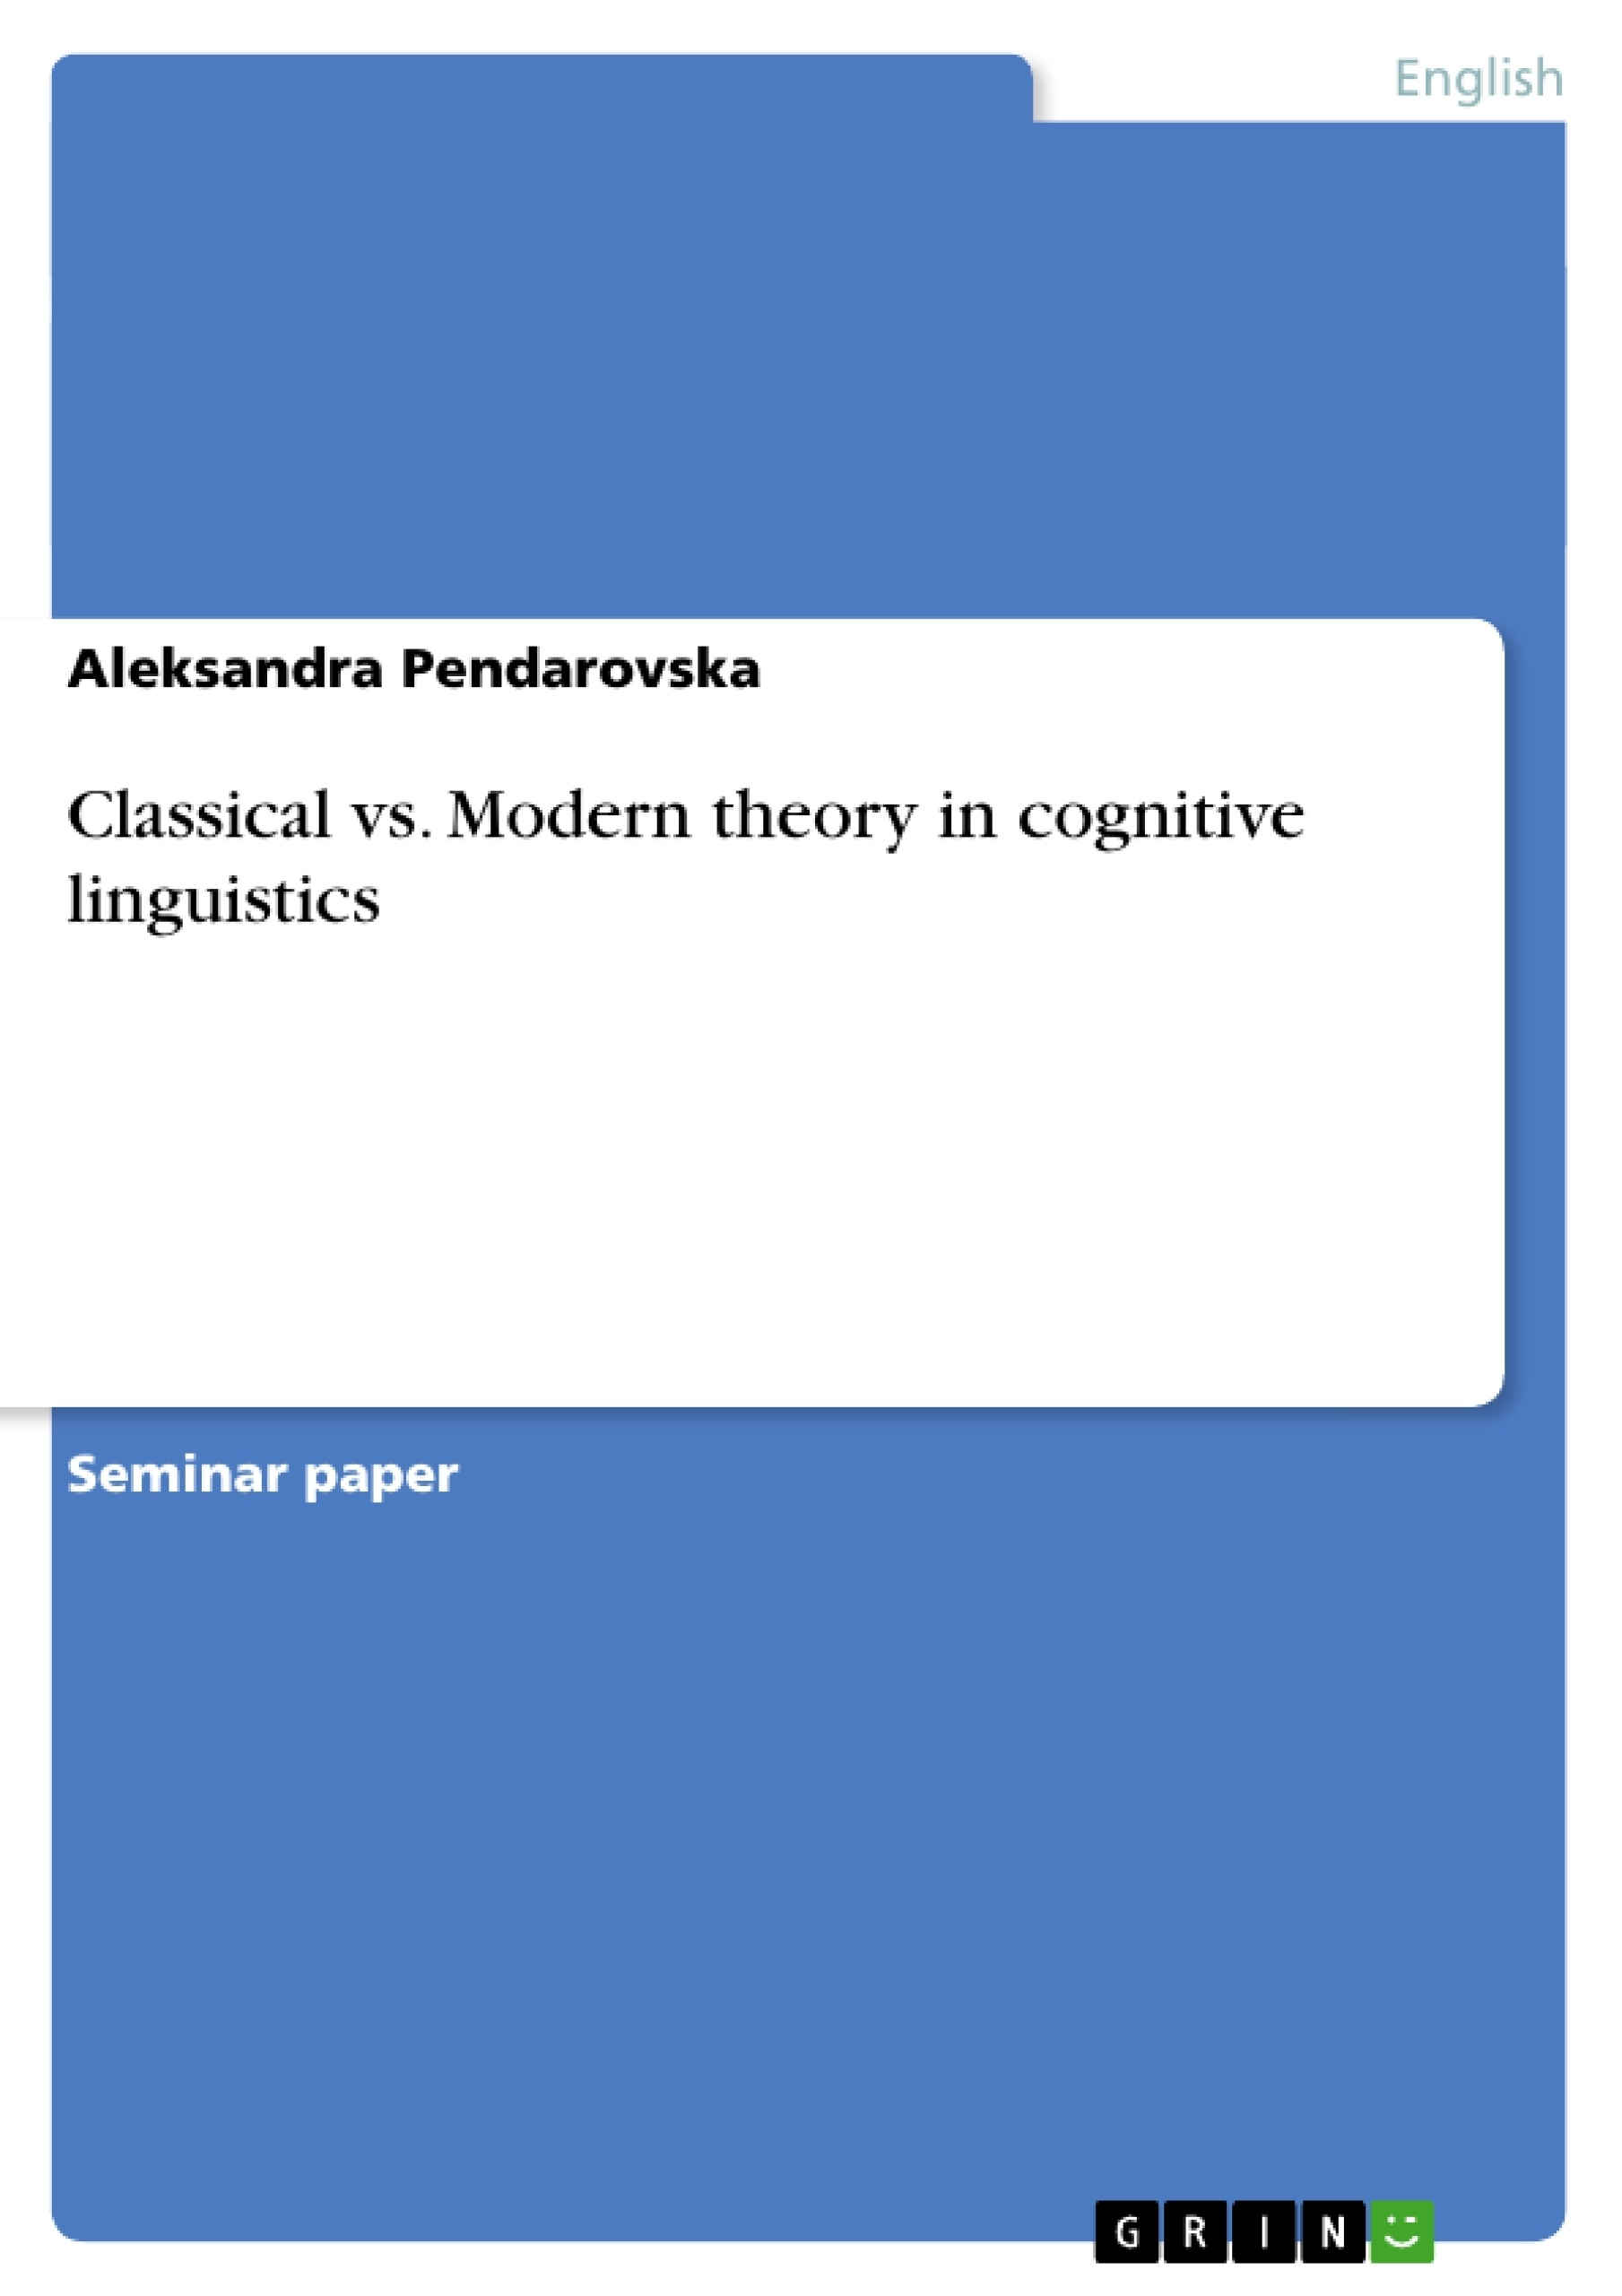 Title: Classical vs. Modern theory in cognitive linguistics